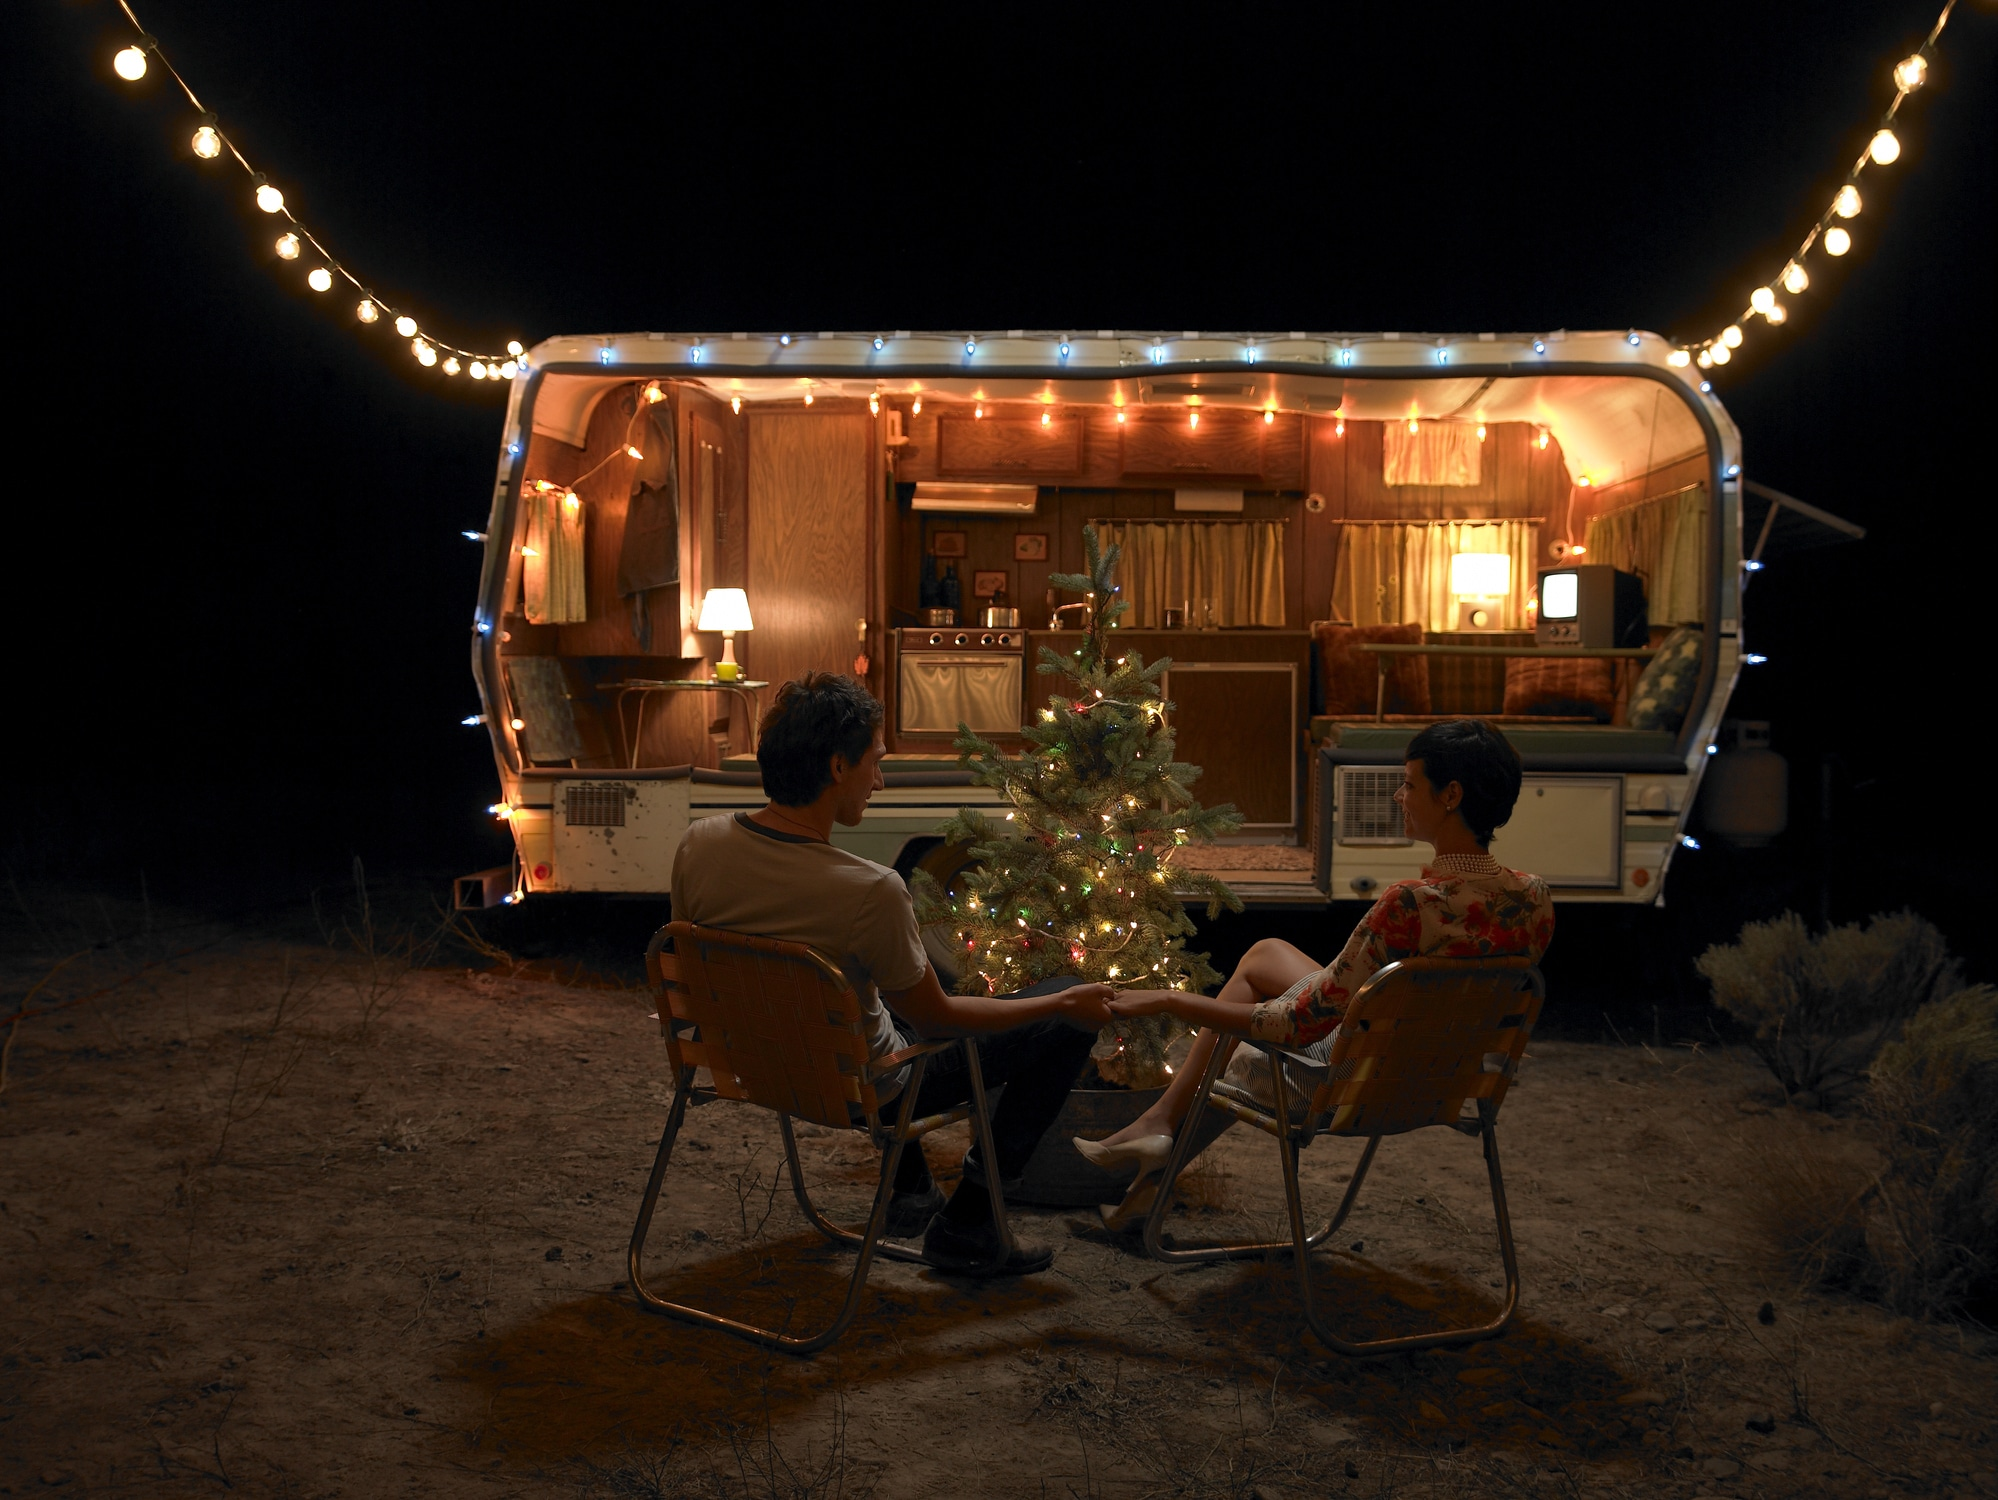 trailer at night with christmas decorations